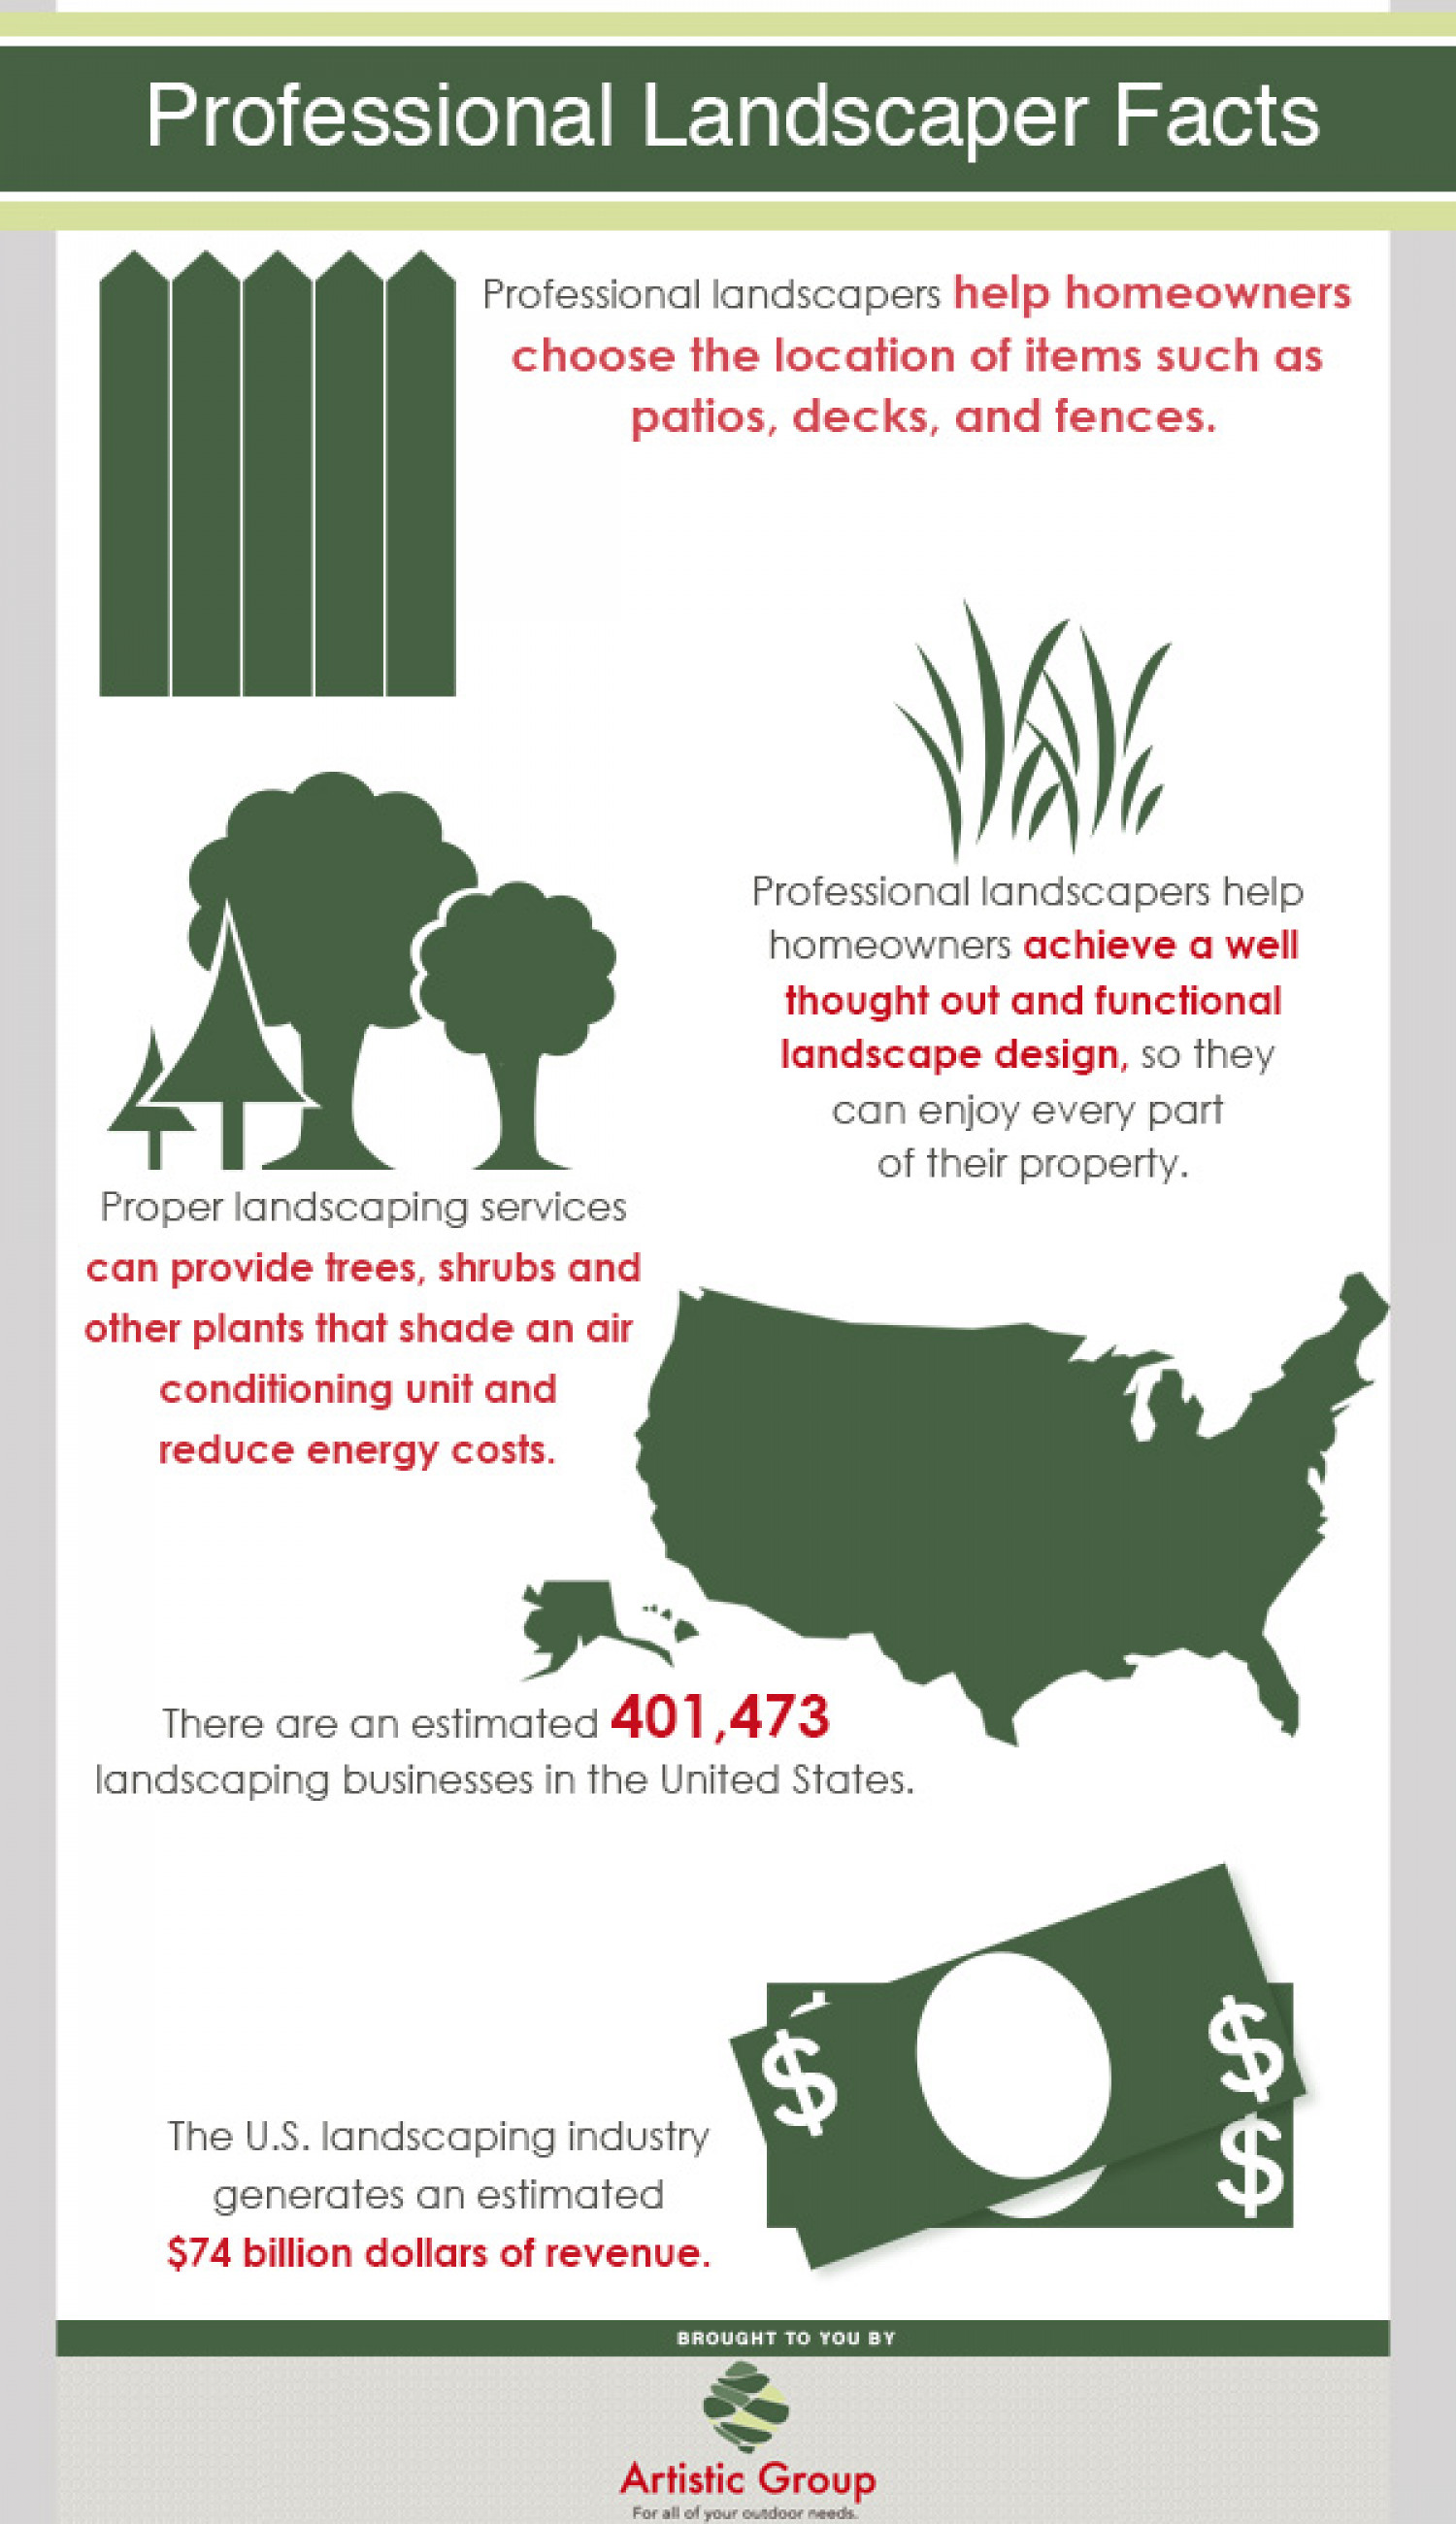 Professional Landscaper Facts Infographic